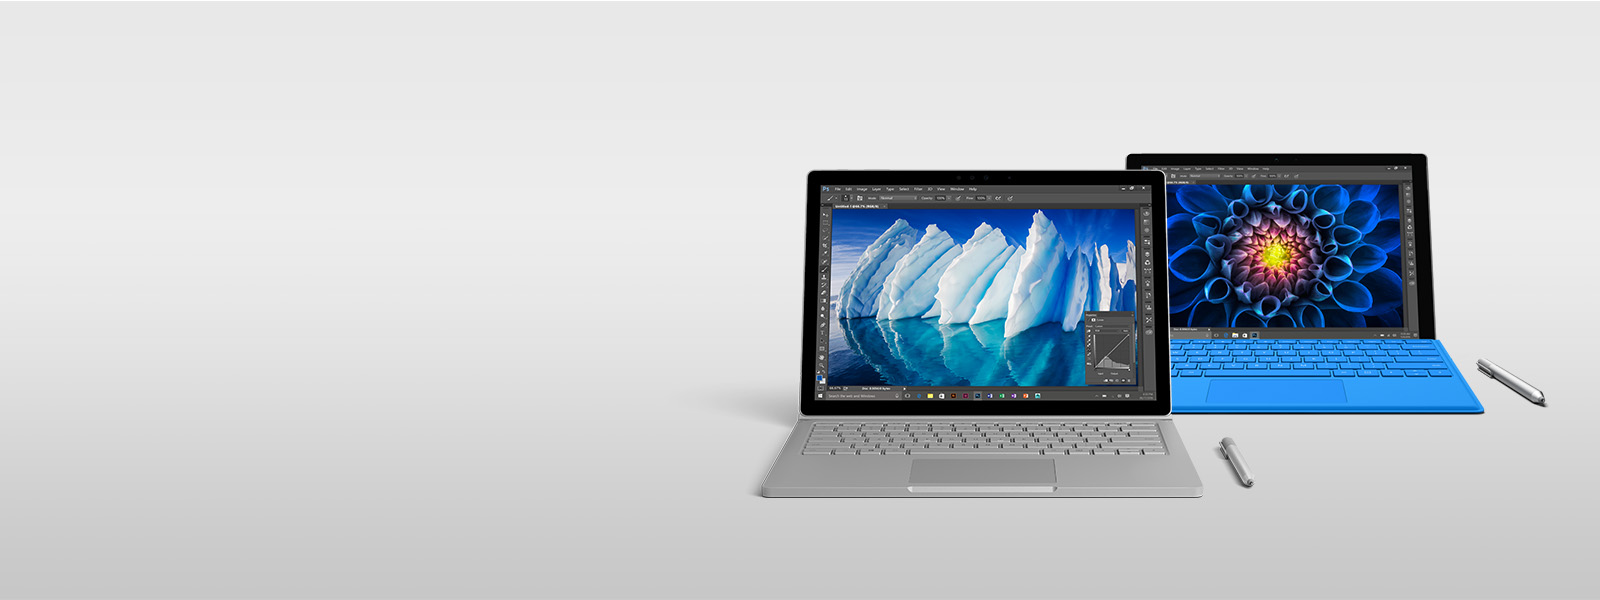 Surface Book with performance base and a Surface Pro 4